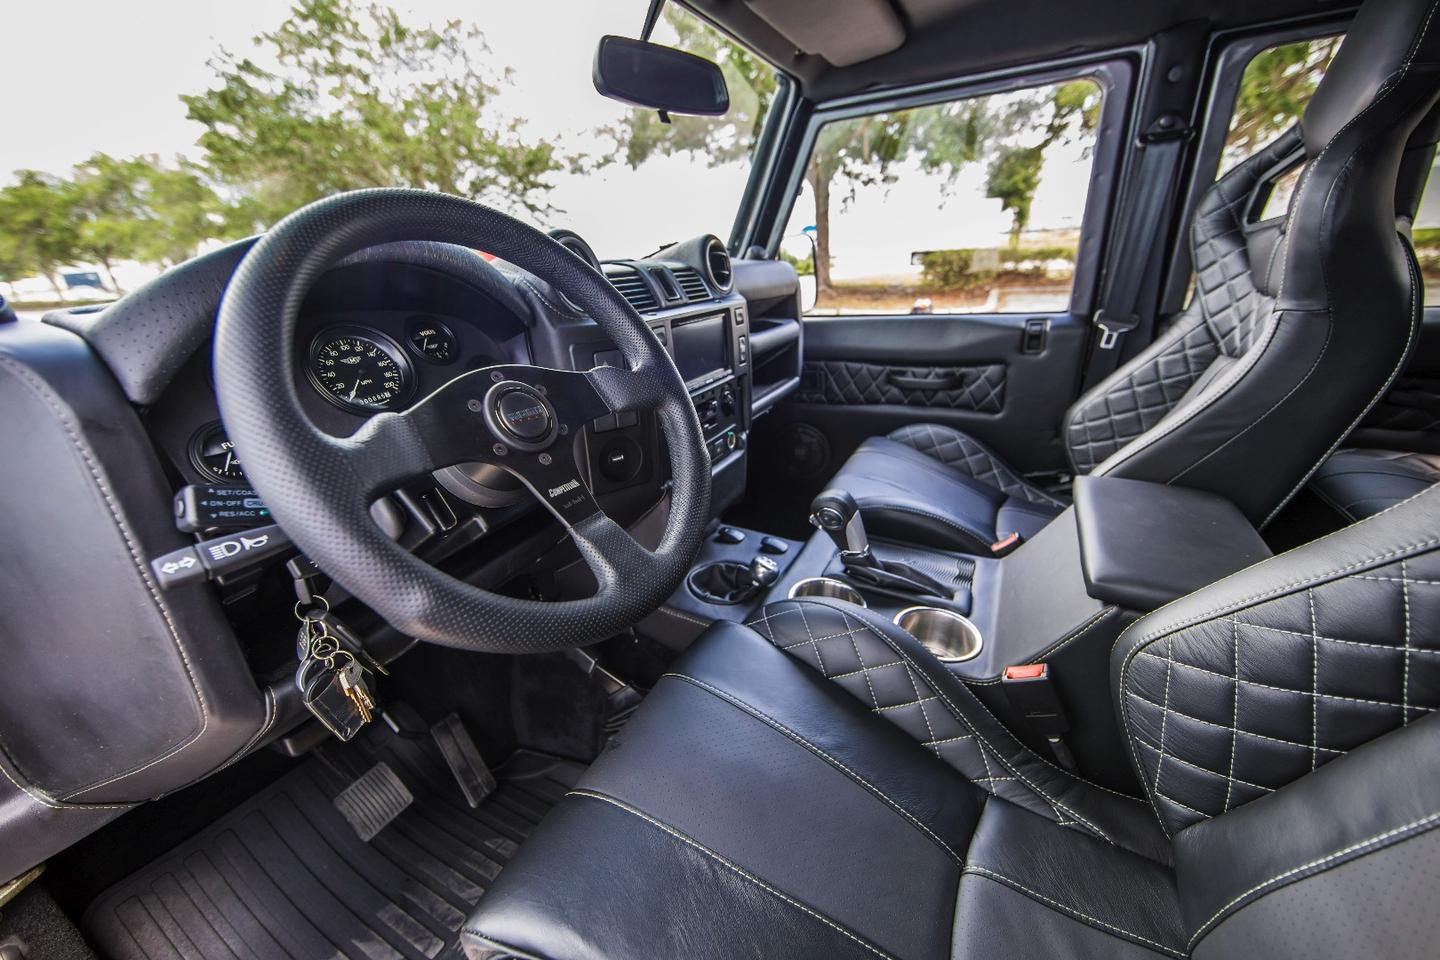 The Project Viper interior includes leather seats with white contrast stitching